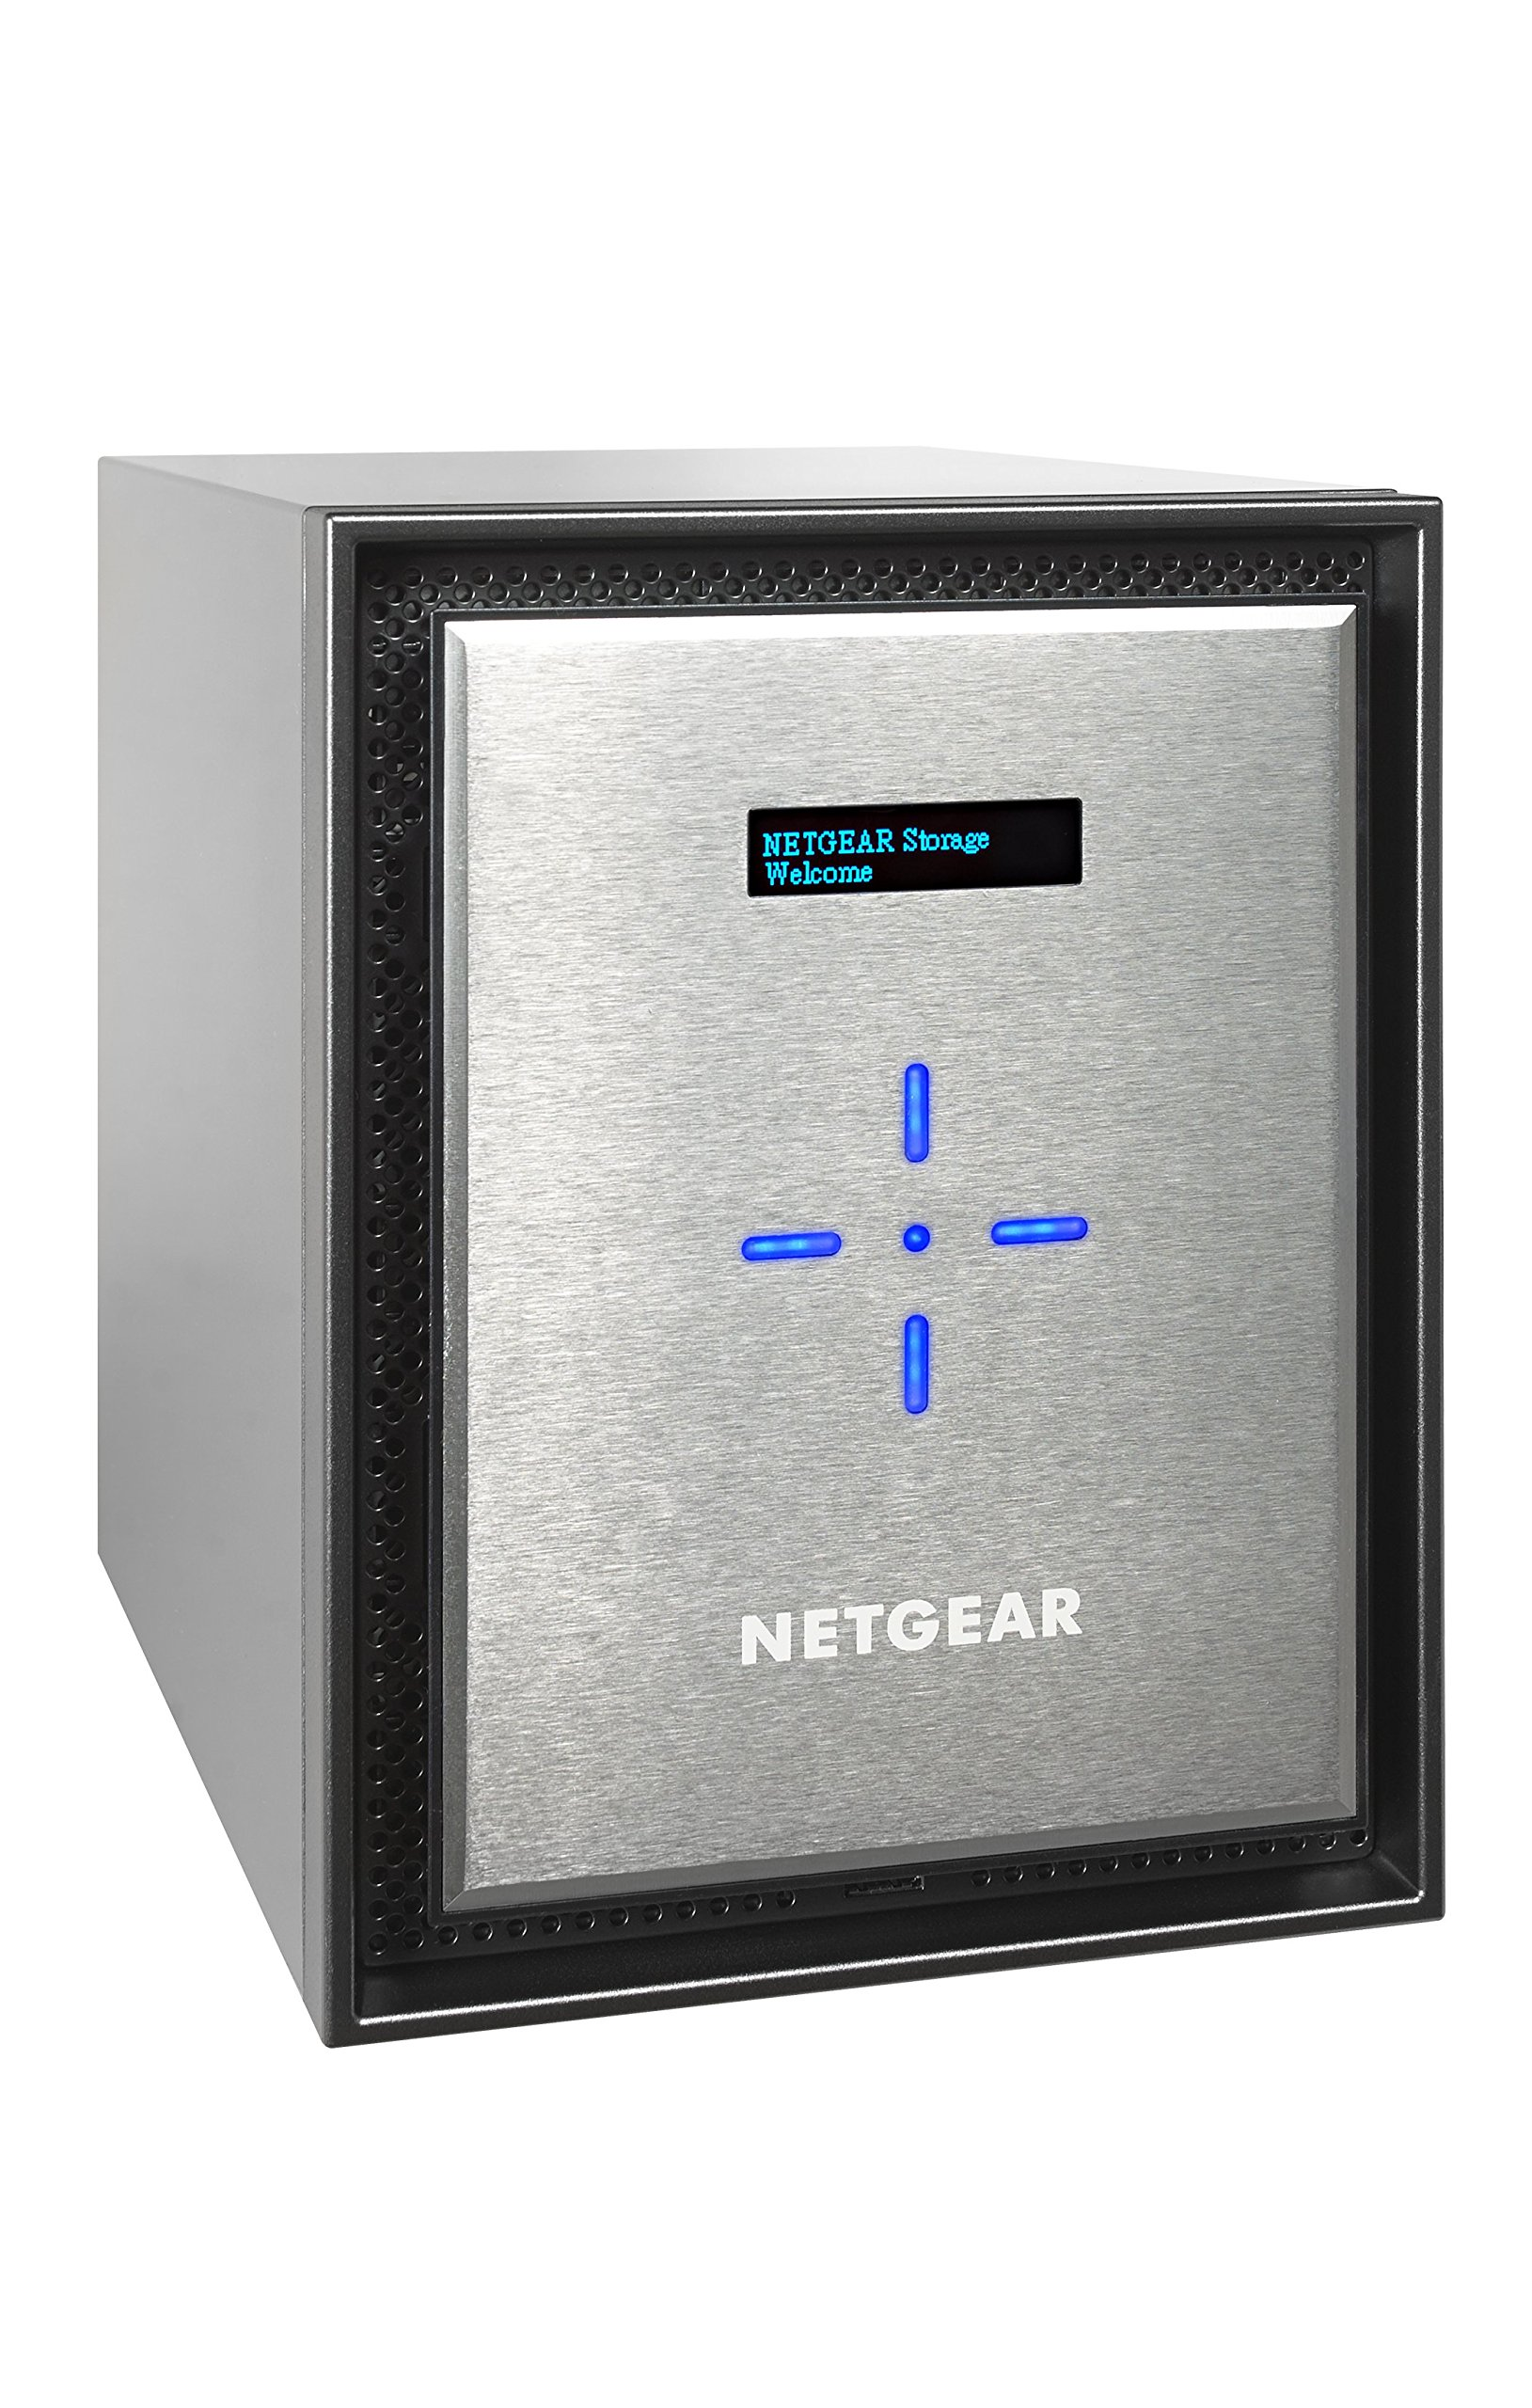 NETGEAR ReadyNAS RN526X00 6 Bay Diskless Premium Performance NAS, 60TB Capacity Network Attached Storage, Intel 2.2GHz Dual Core Processor, 4GB RAM by NETGEAR